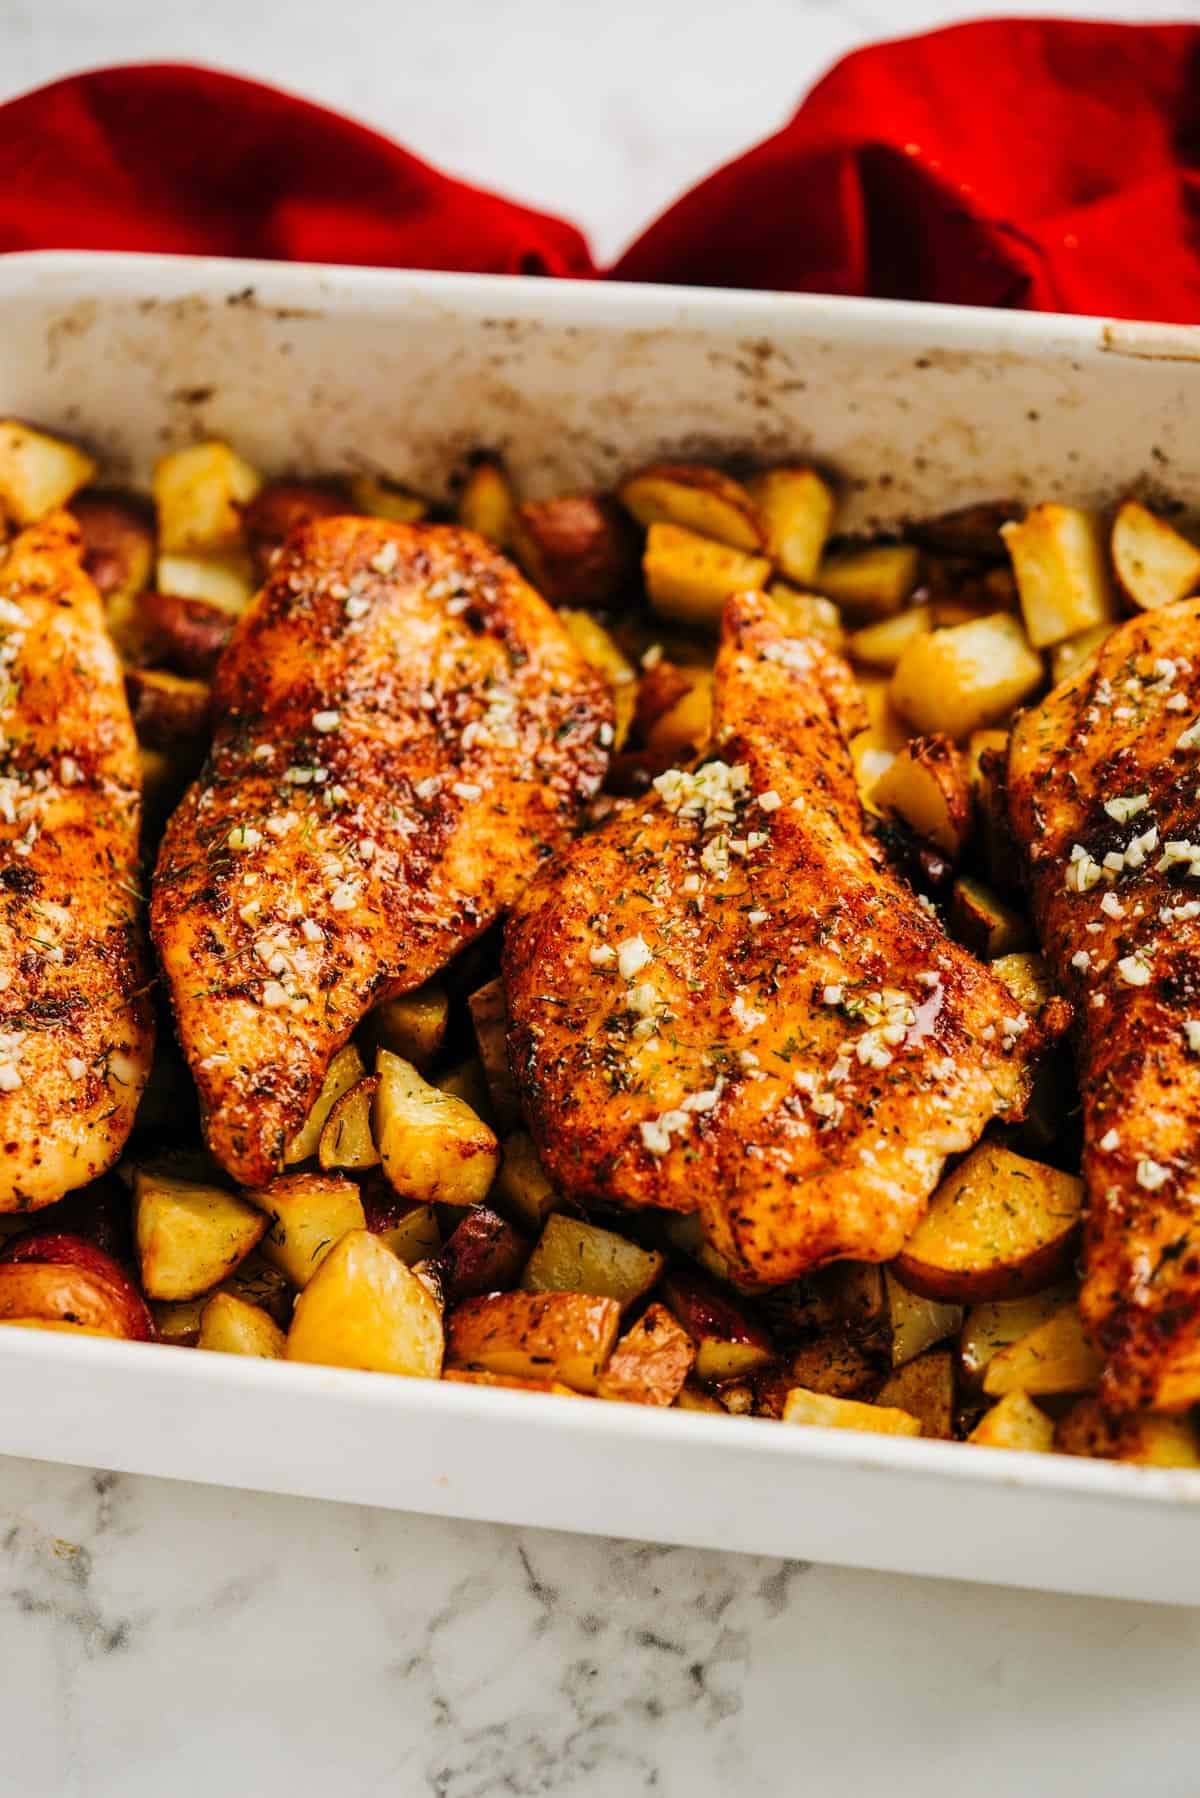 4 seasoned chicken breasts in a pan with potatoes